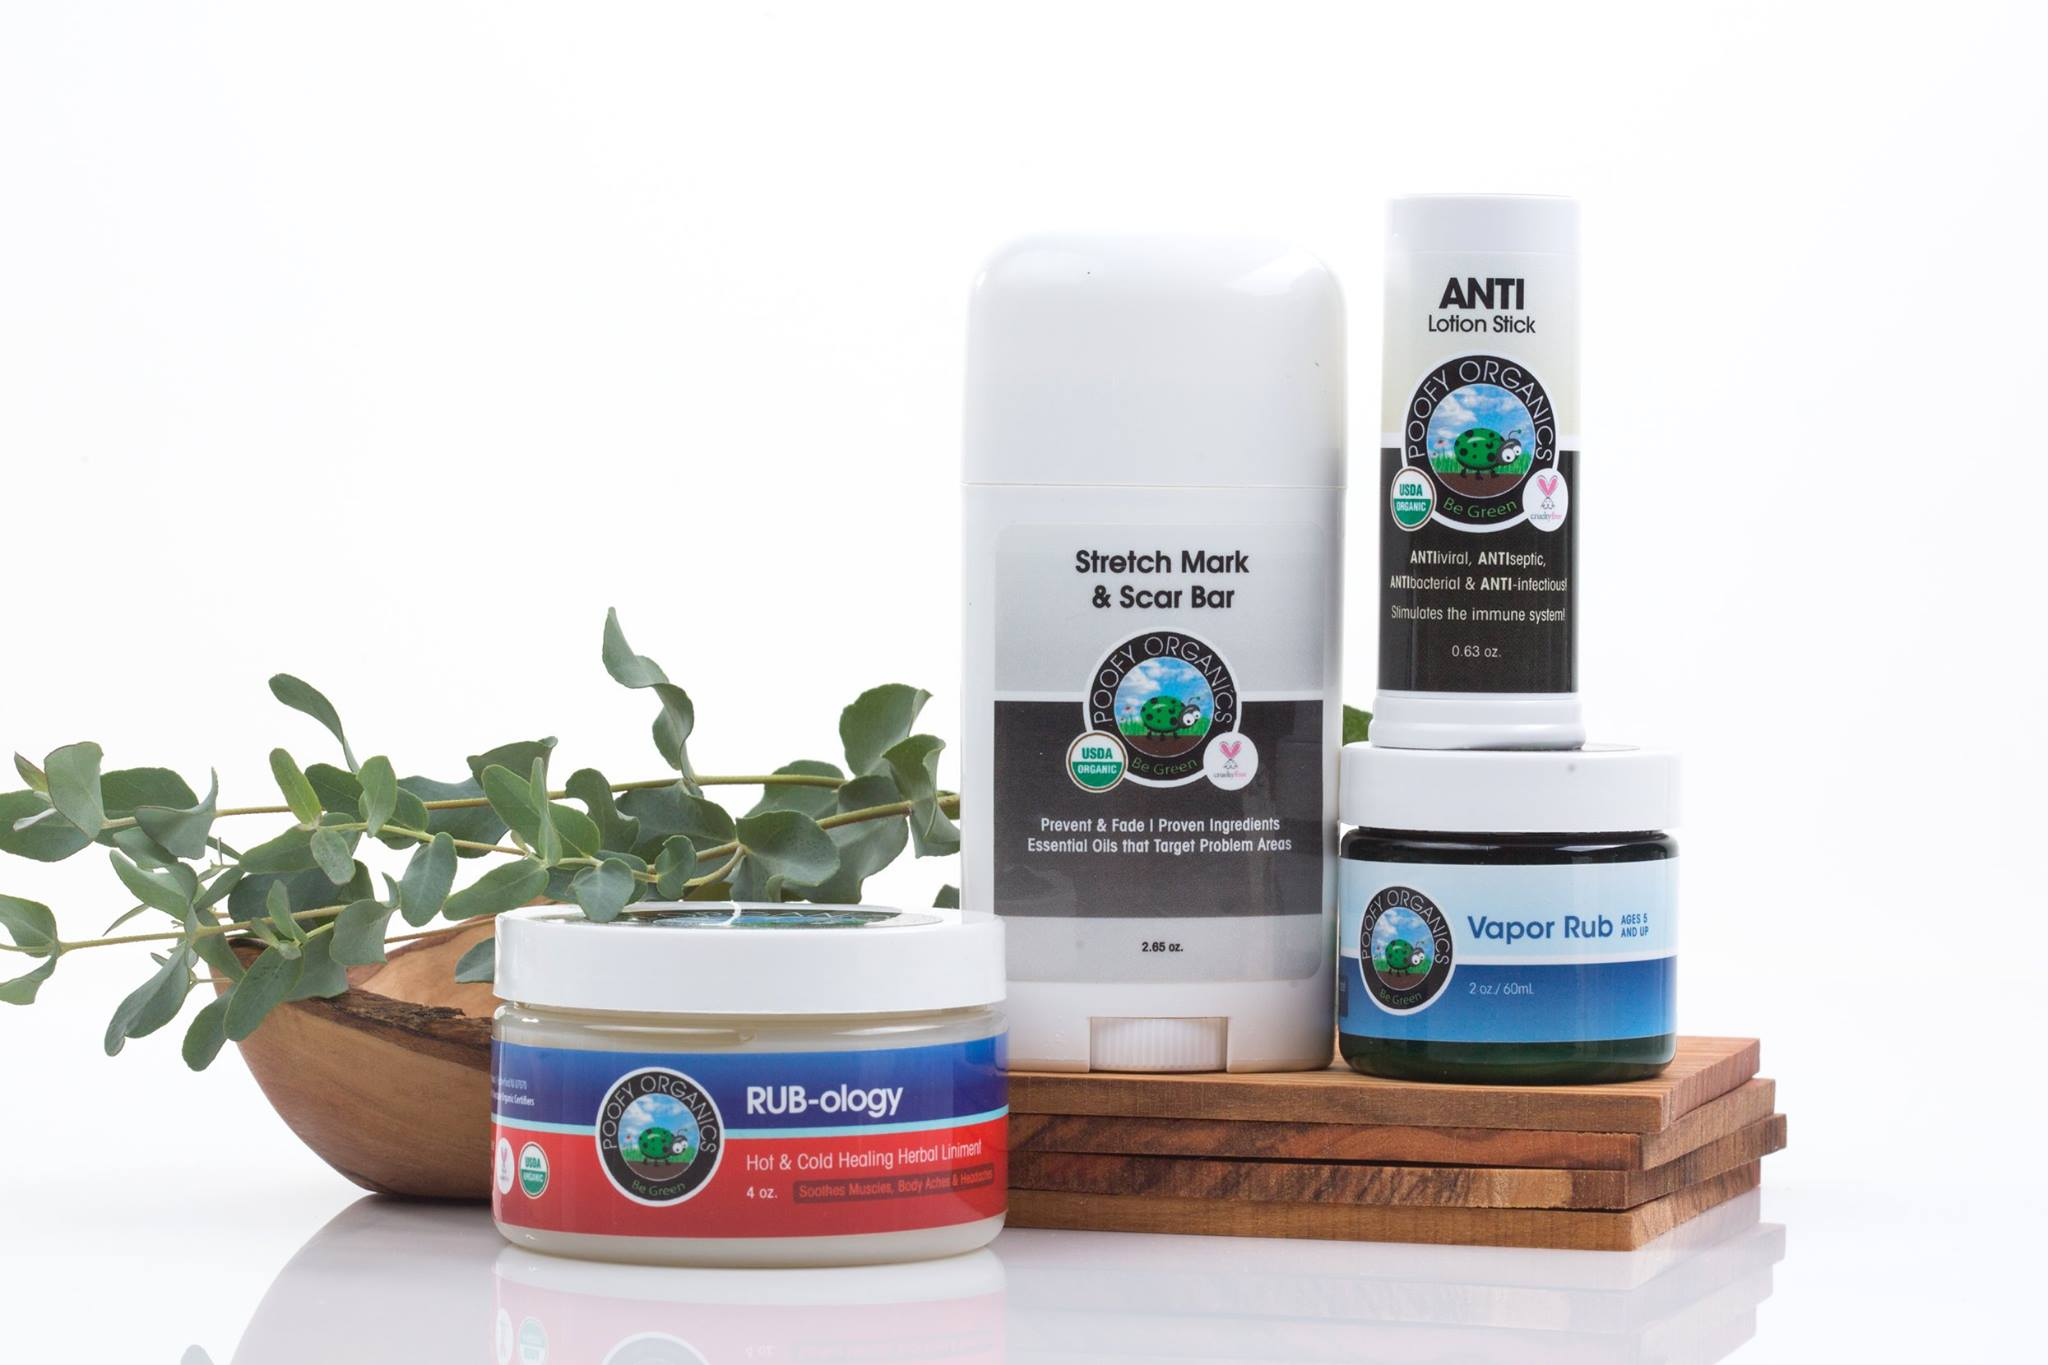 Poofy Organics Toxin-Free Home Bath and Body Remedies Ointments